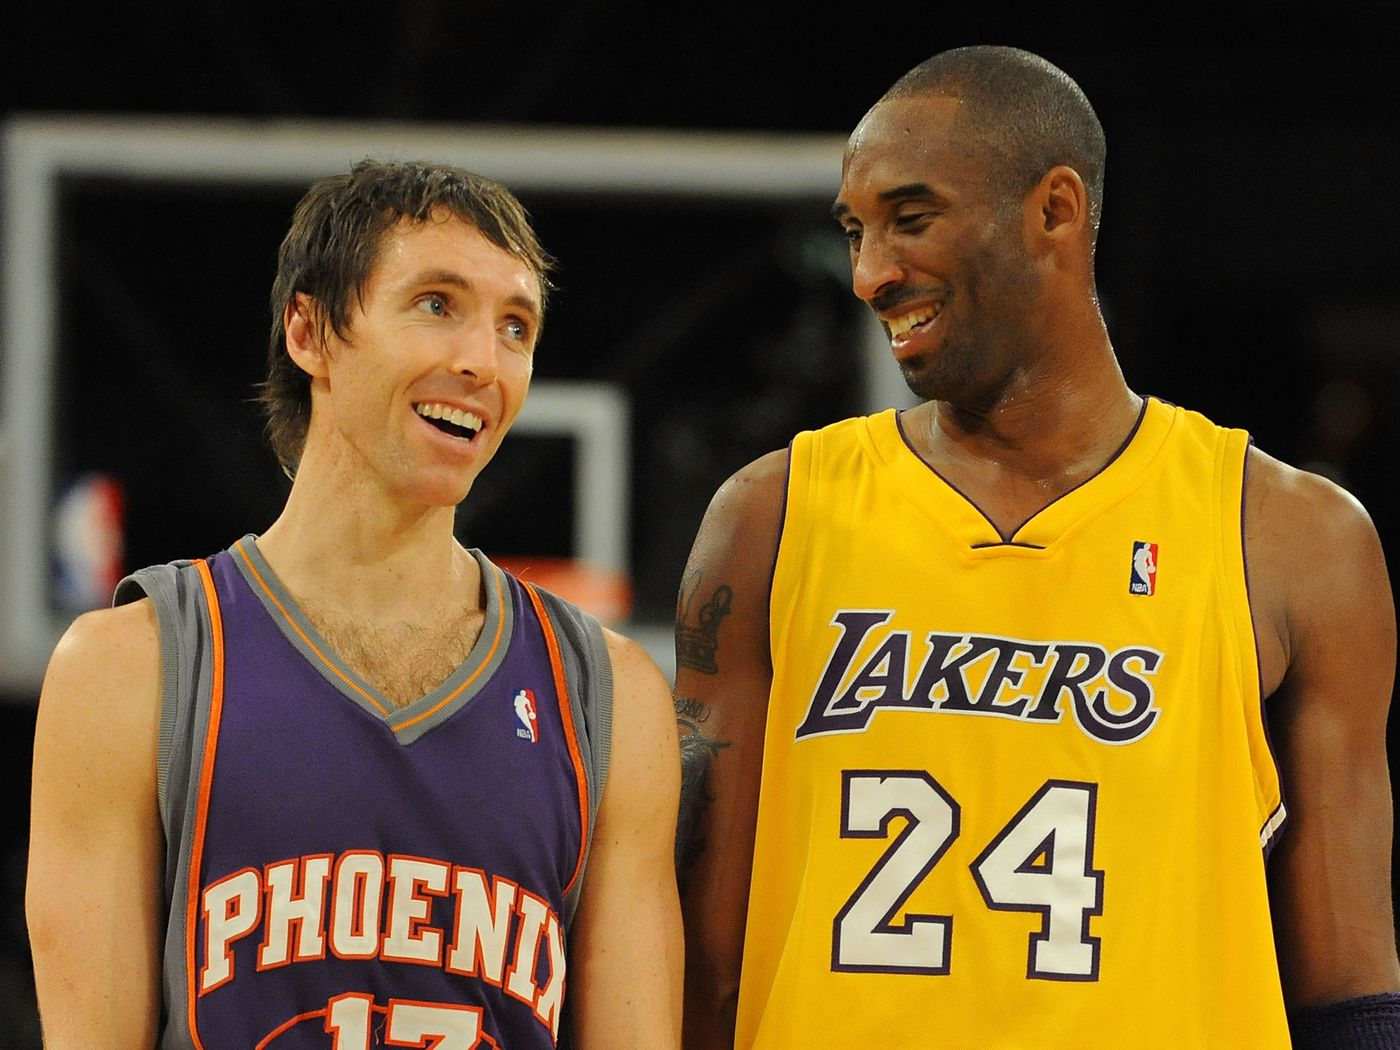 new styles 7ed8c cab9d Let s argue about whether Kobe Bryant s draft class was better than Michael  Jordan s